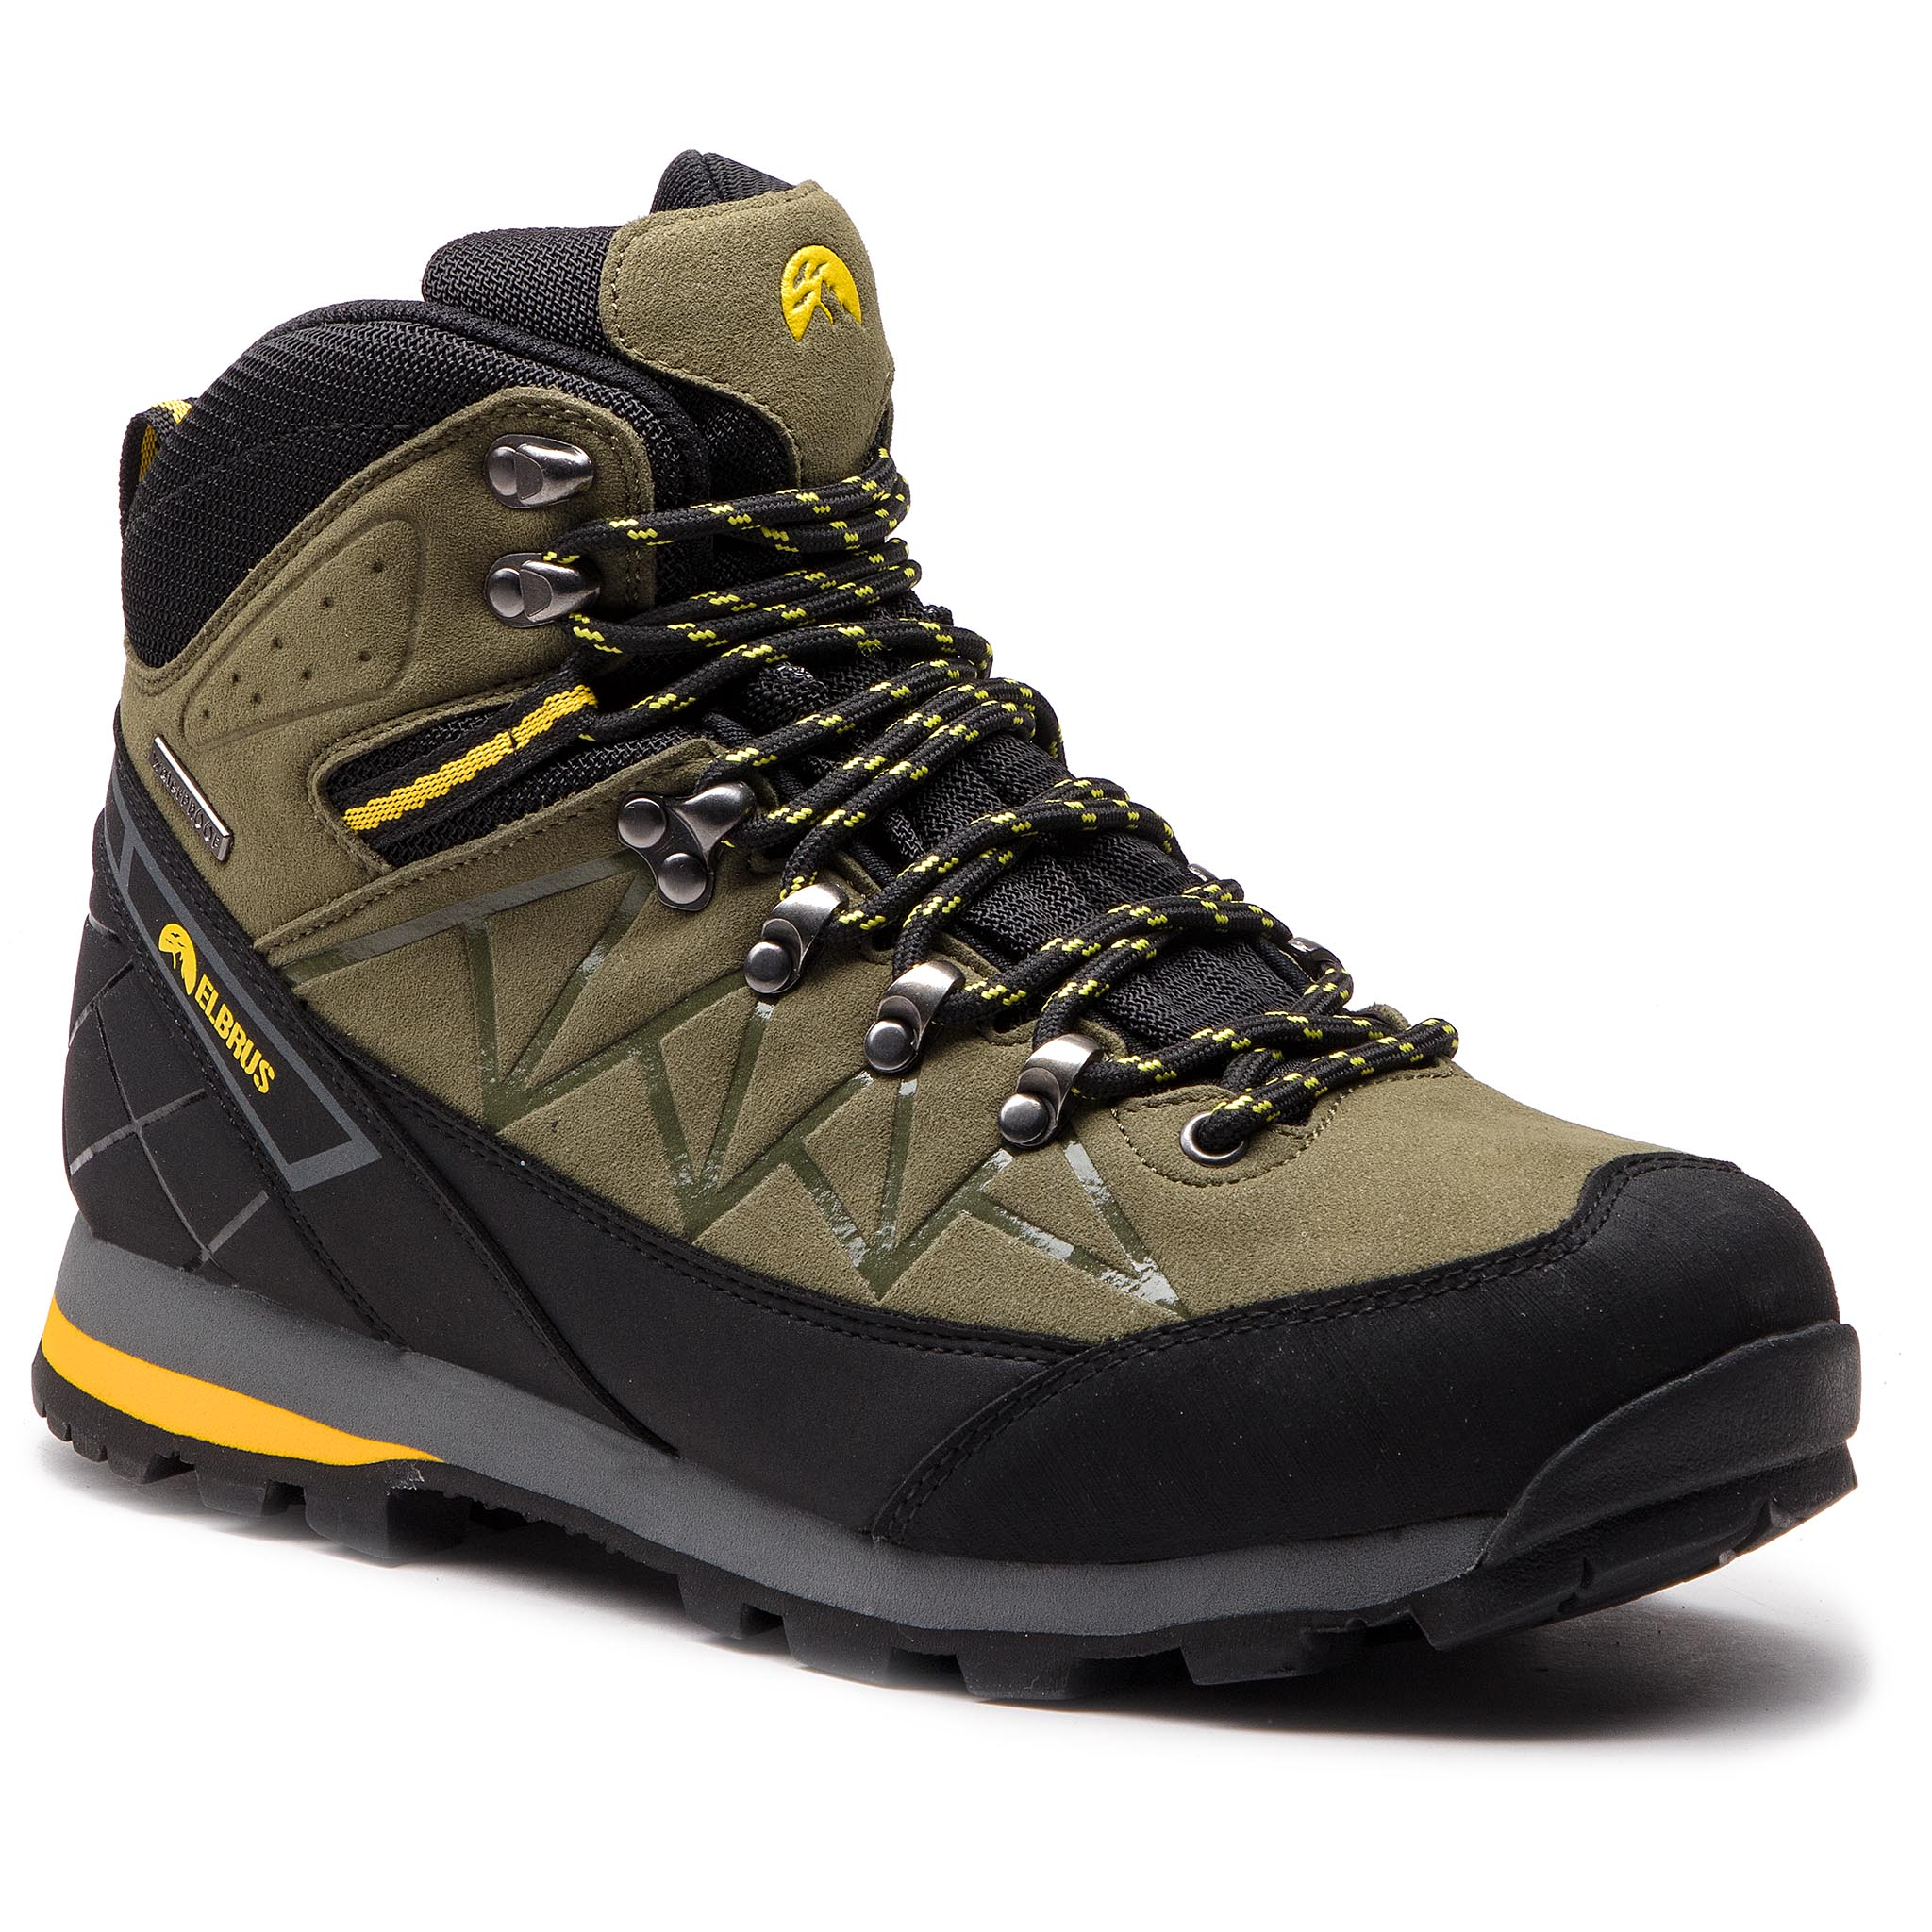 Trekkings Elbrus - Muerto Mid Wp Light Khaki/Black/Yellow imagine epantofi.ro 2021